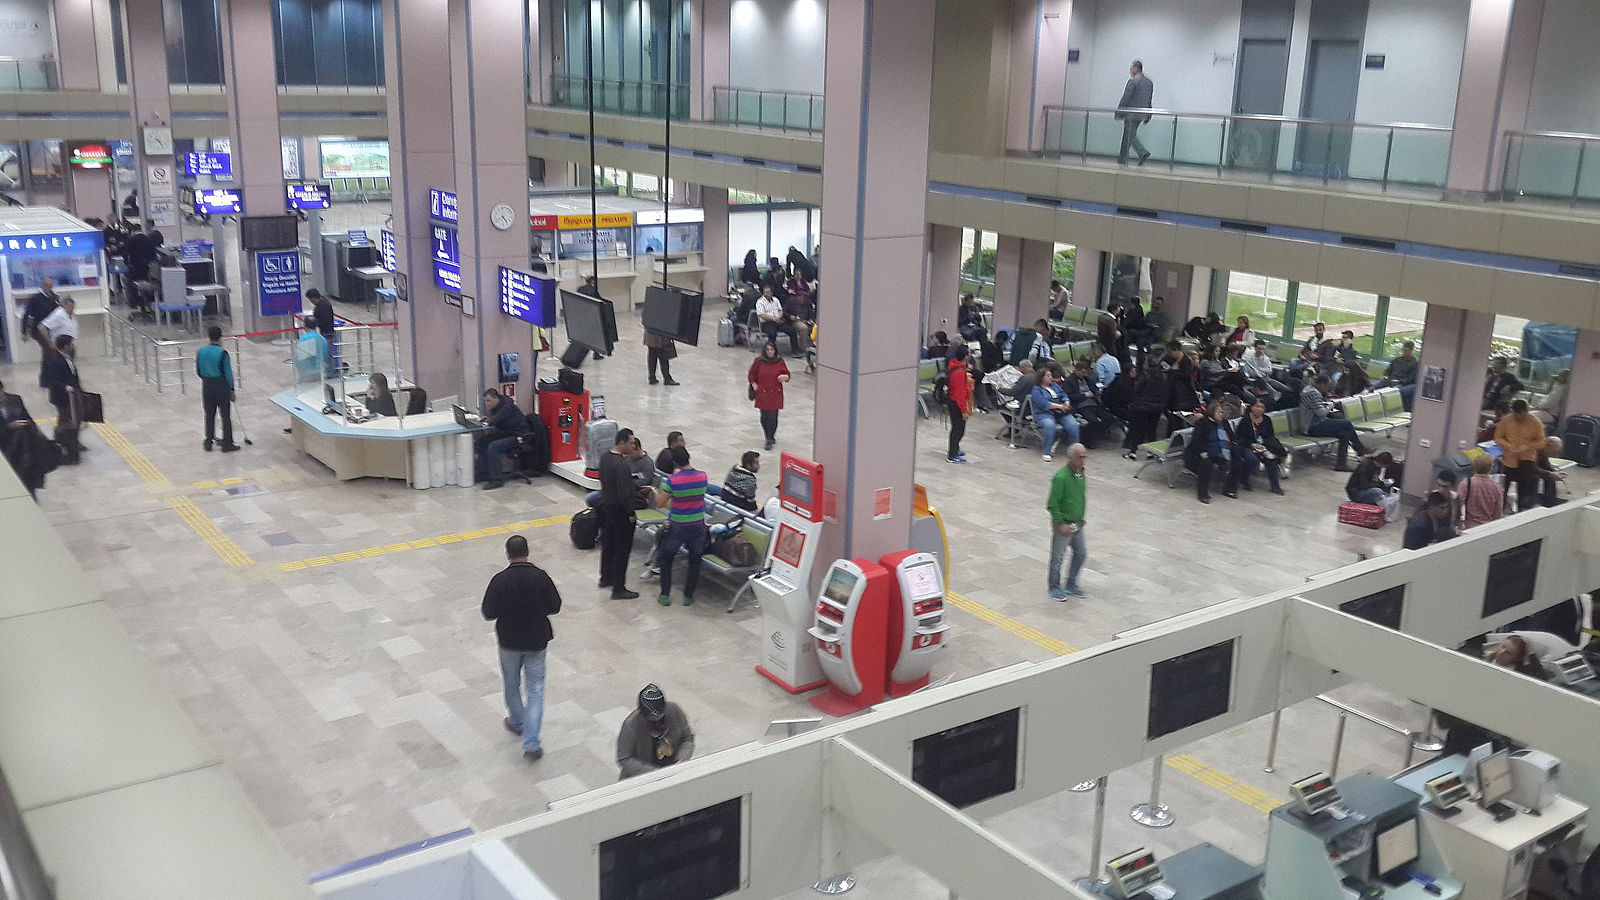 Adana Airport consists of a couple of passenger terminals.